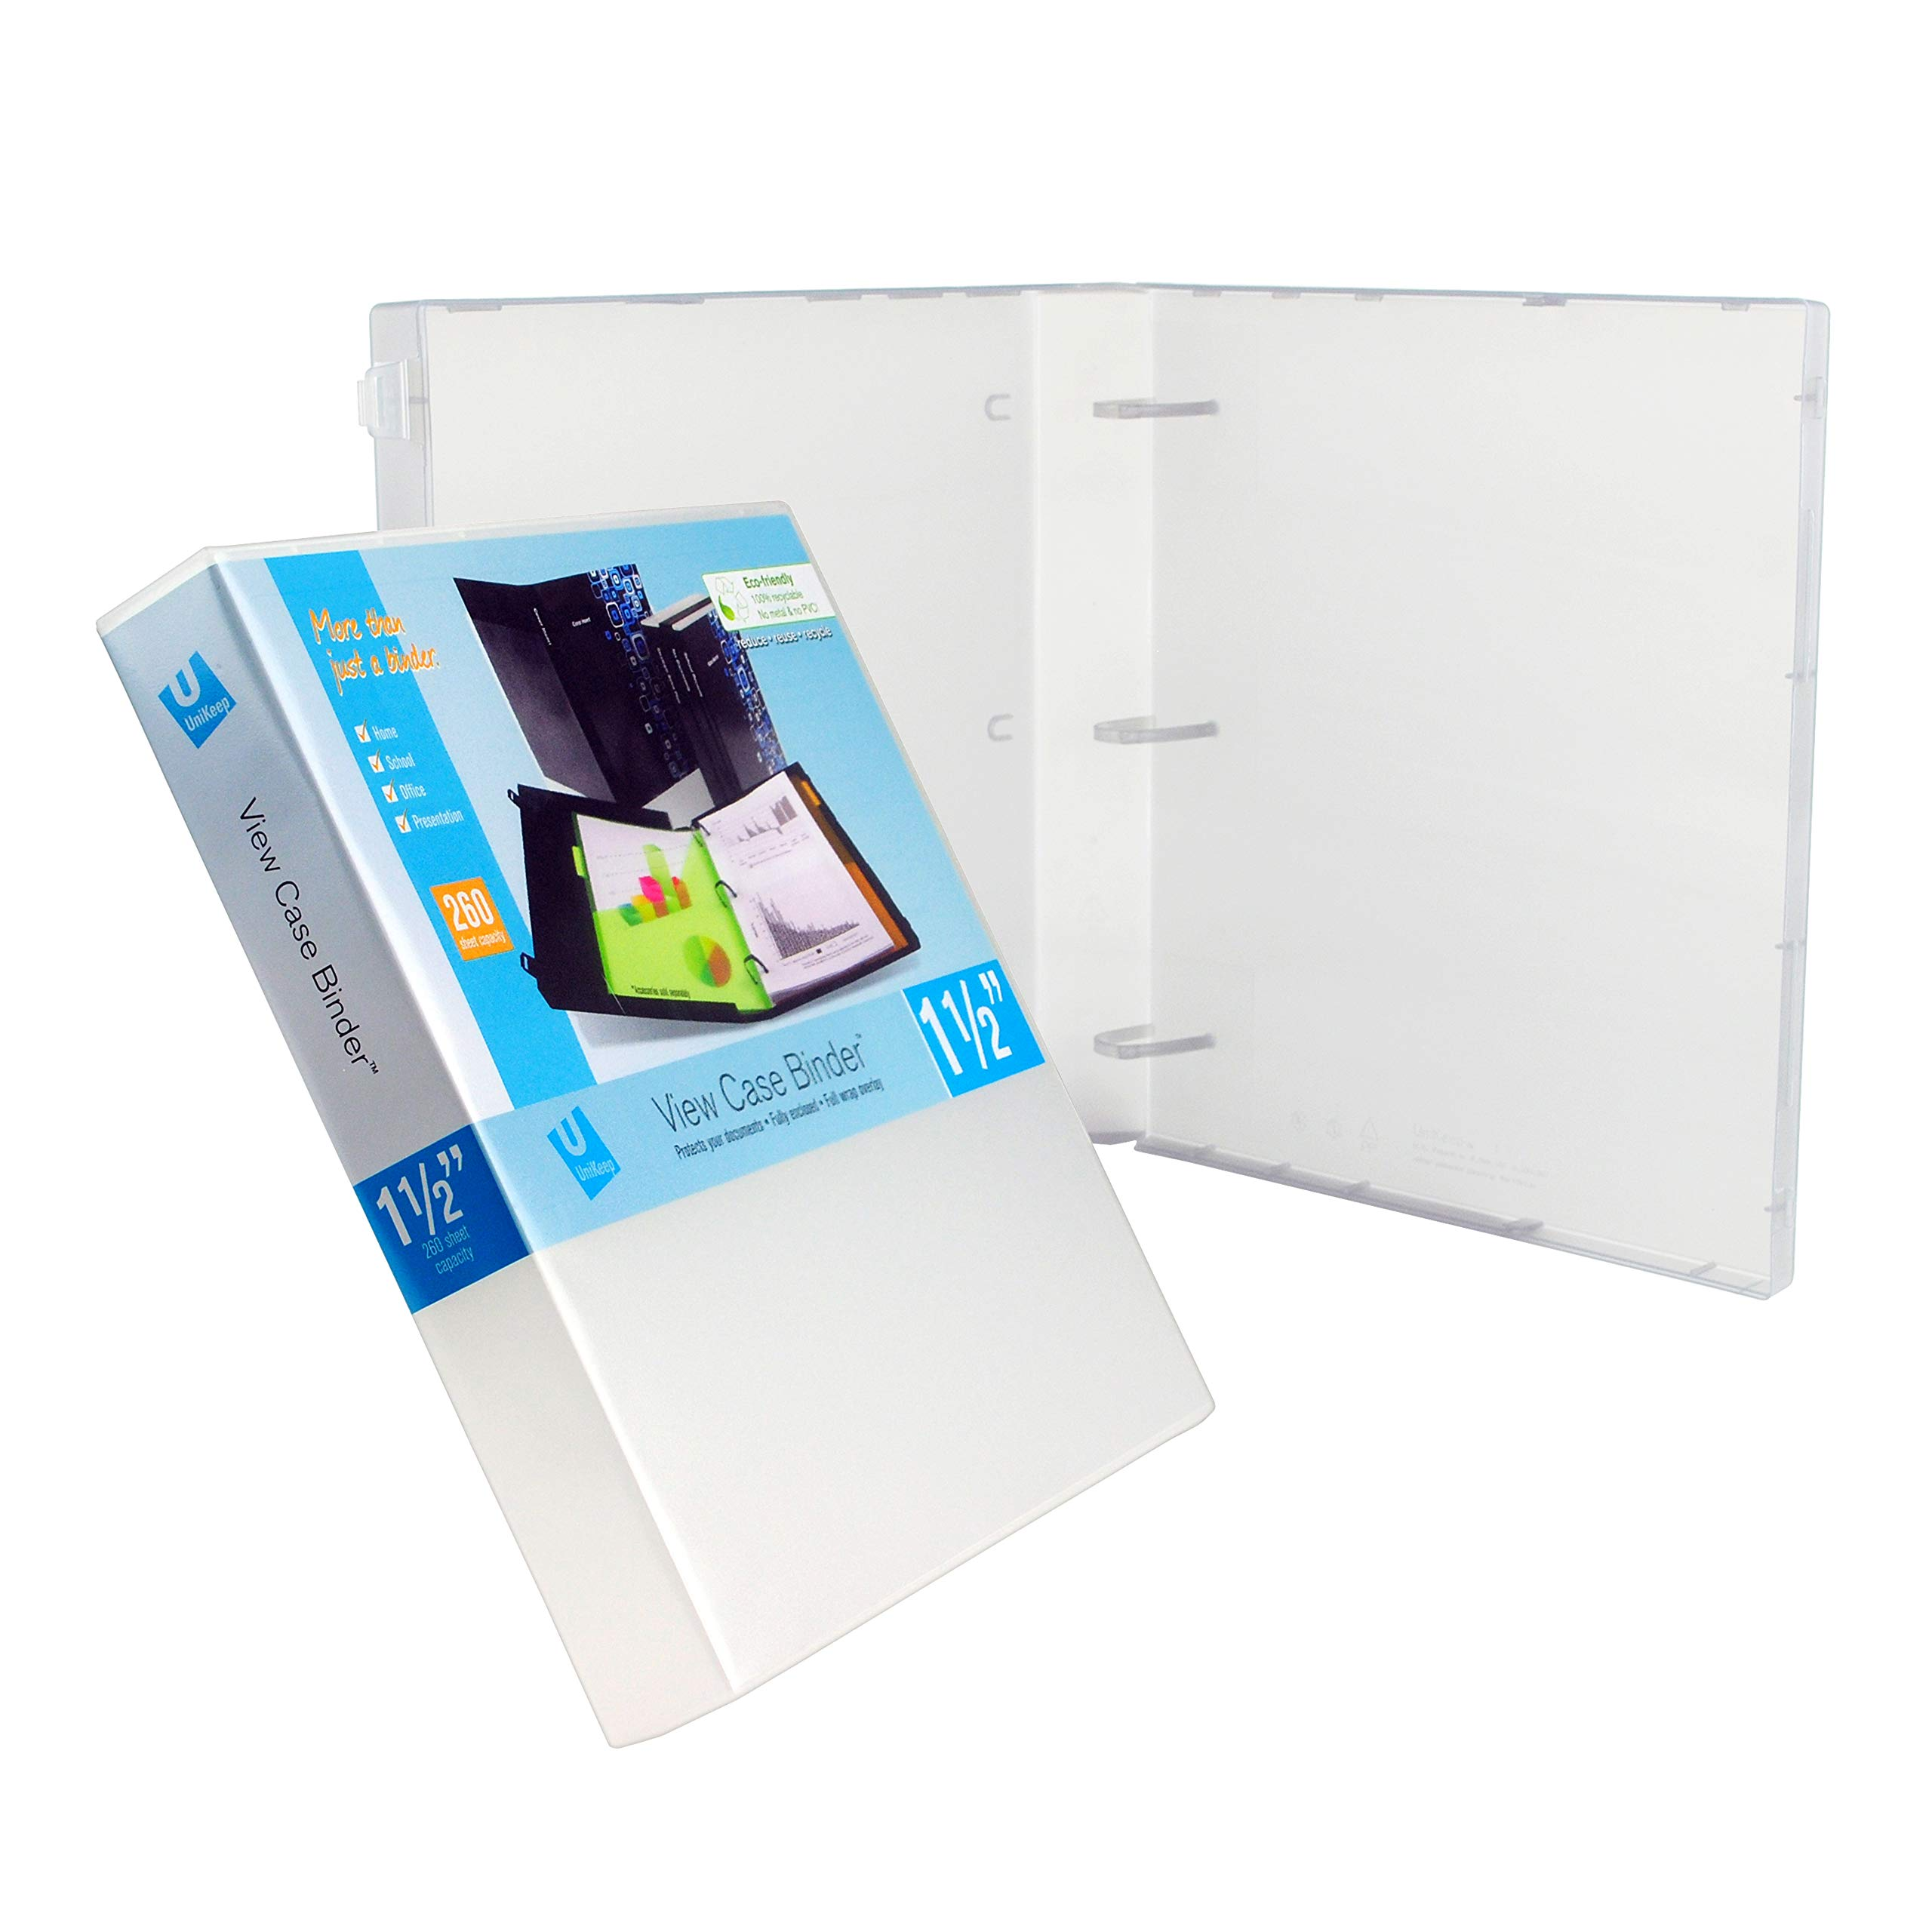 Unikeep 3 Ring Binder - Clear - Case View Binder - 1.5 Inch Spine - Metal Rings - With Clear Outer Overlay - 3 Pack of Binders